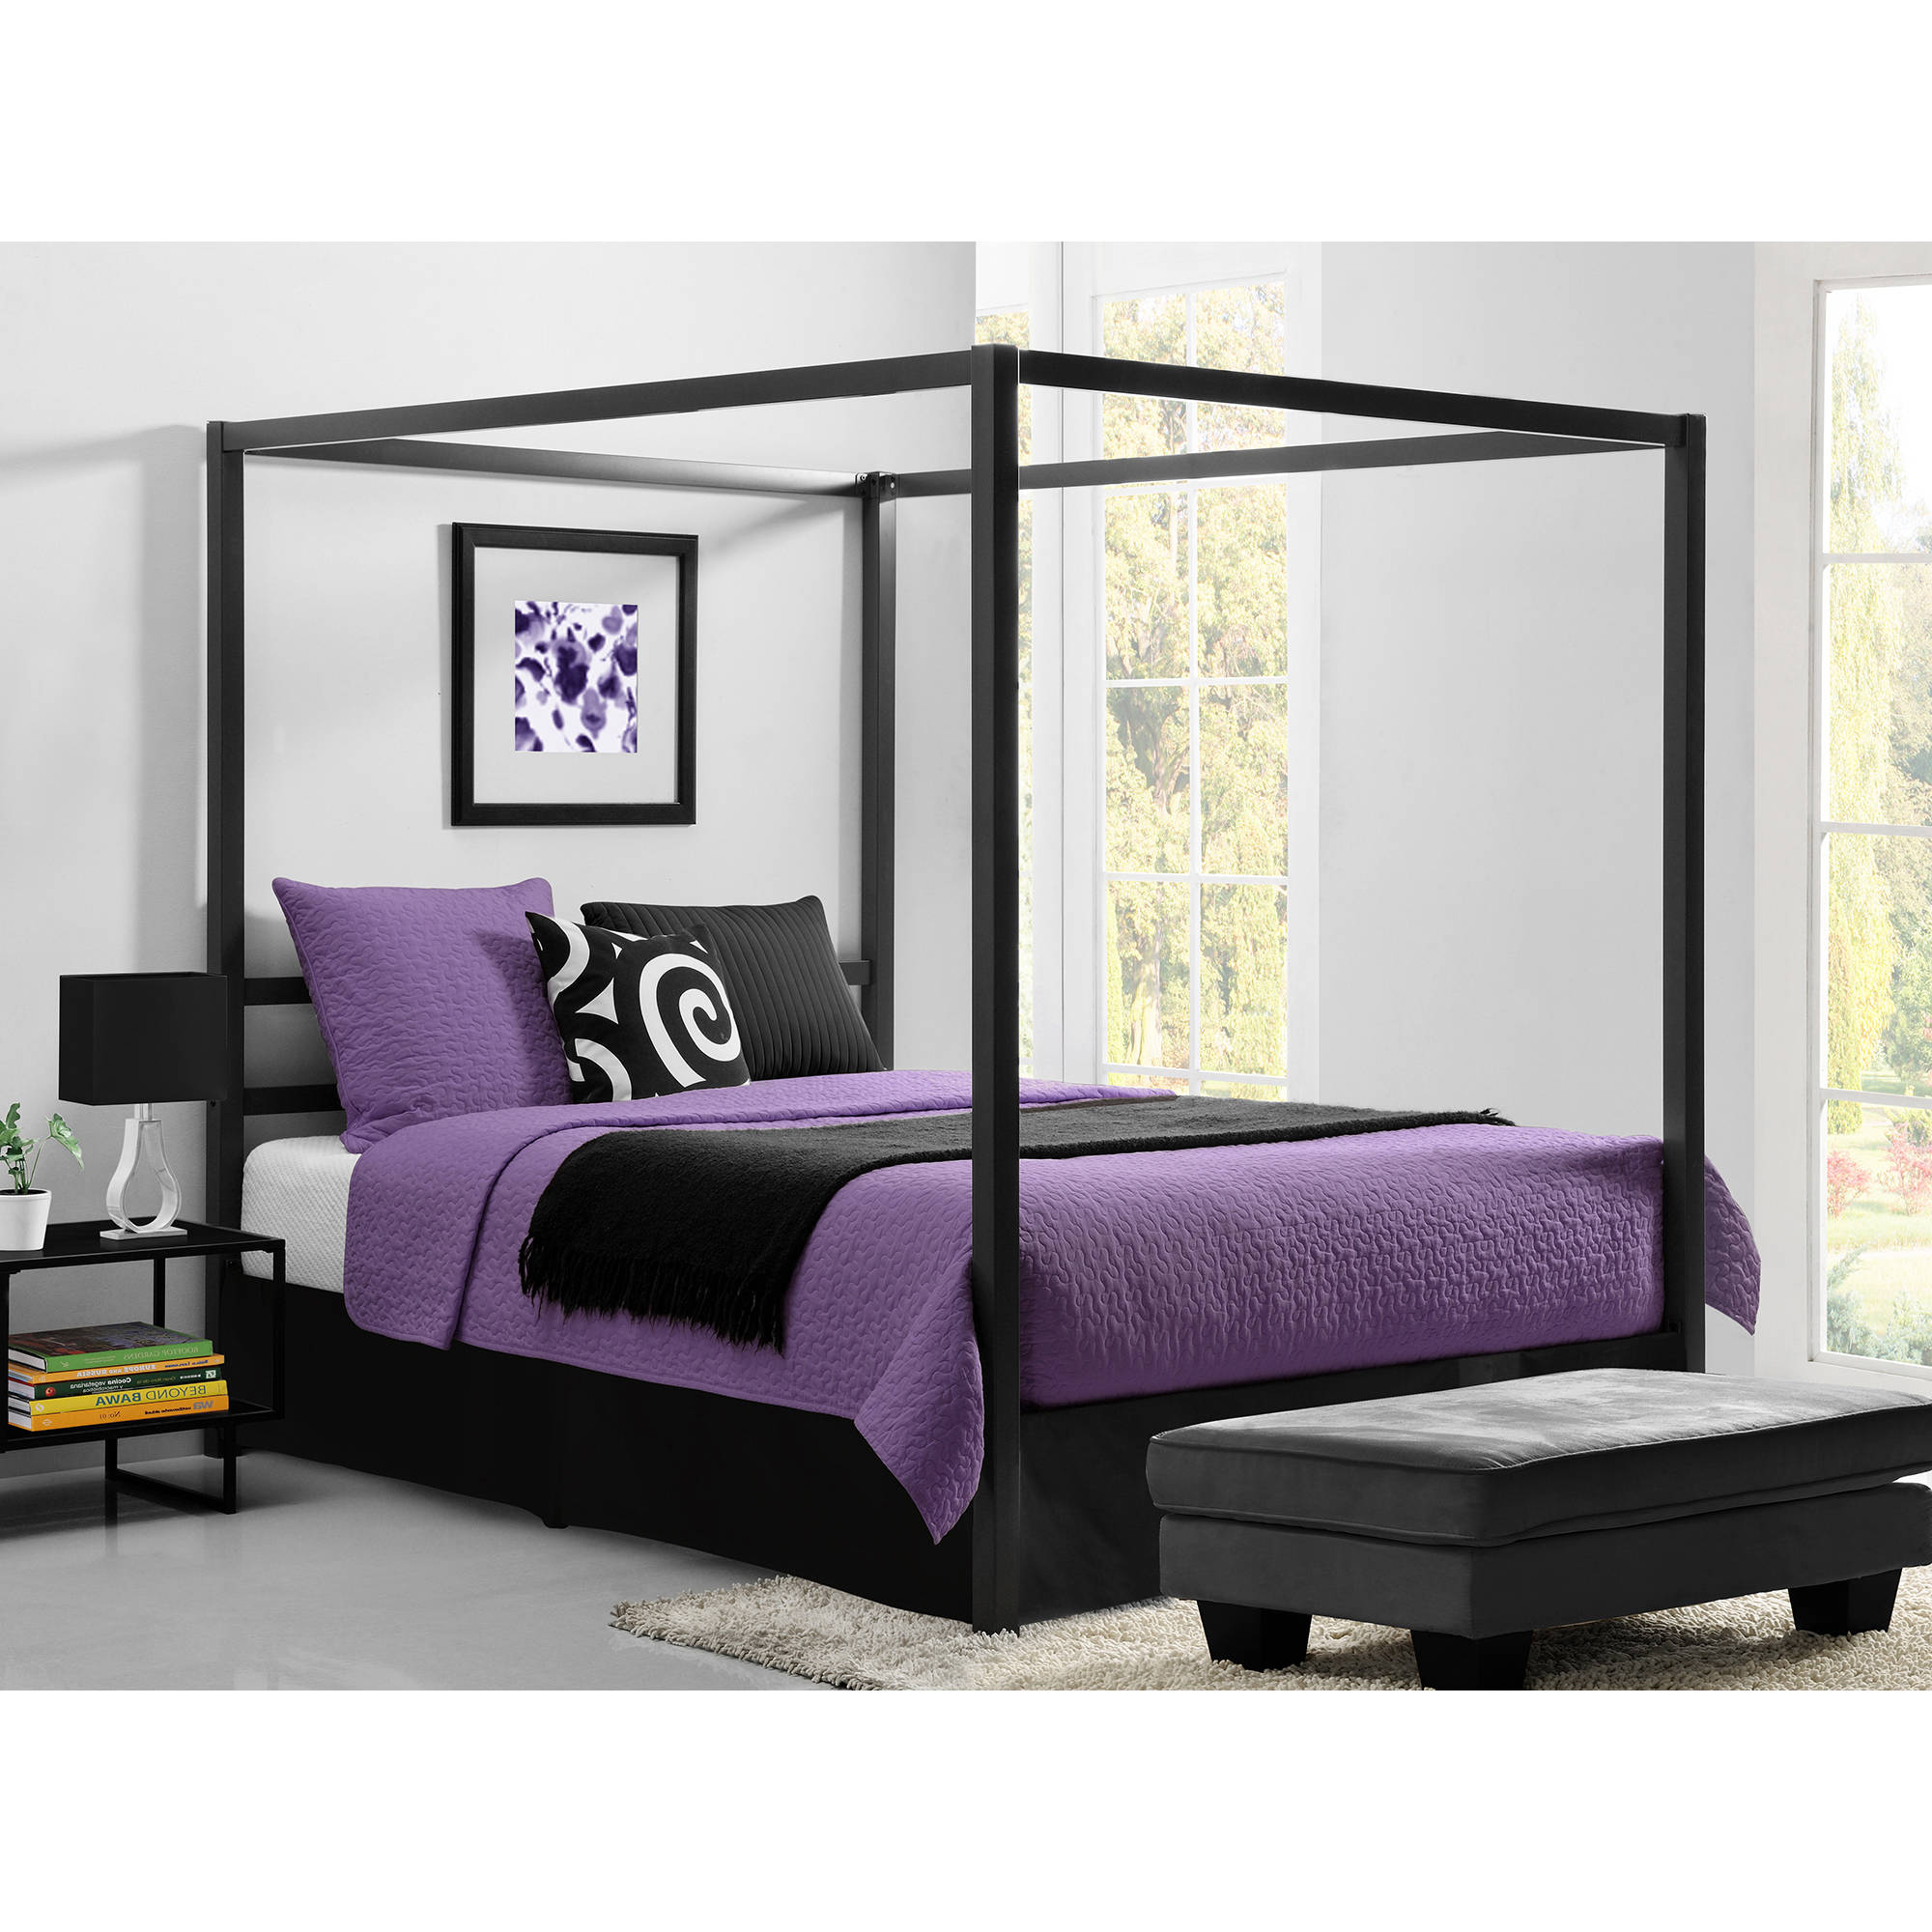 Dorel Modern Canopy Queen Metal Bed Multiple Colors  sc 1 st  Walmart.com & Dorel Modern Canopy Queen Metal Bed Multiple Colors - Walmart.com